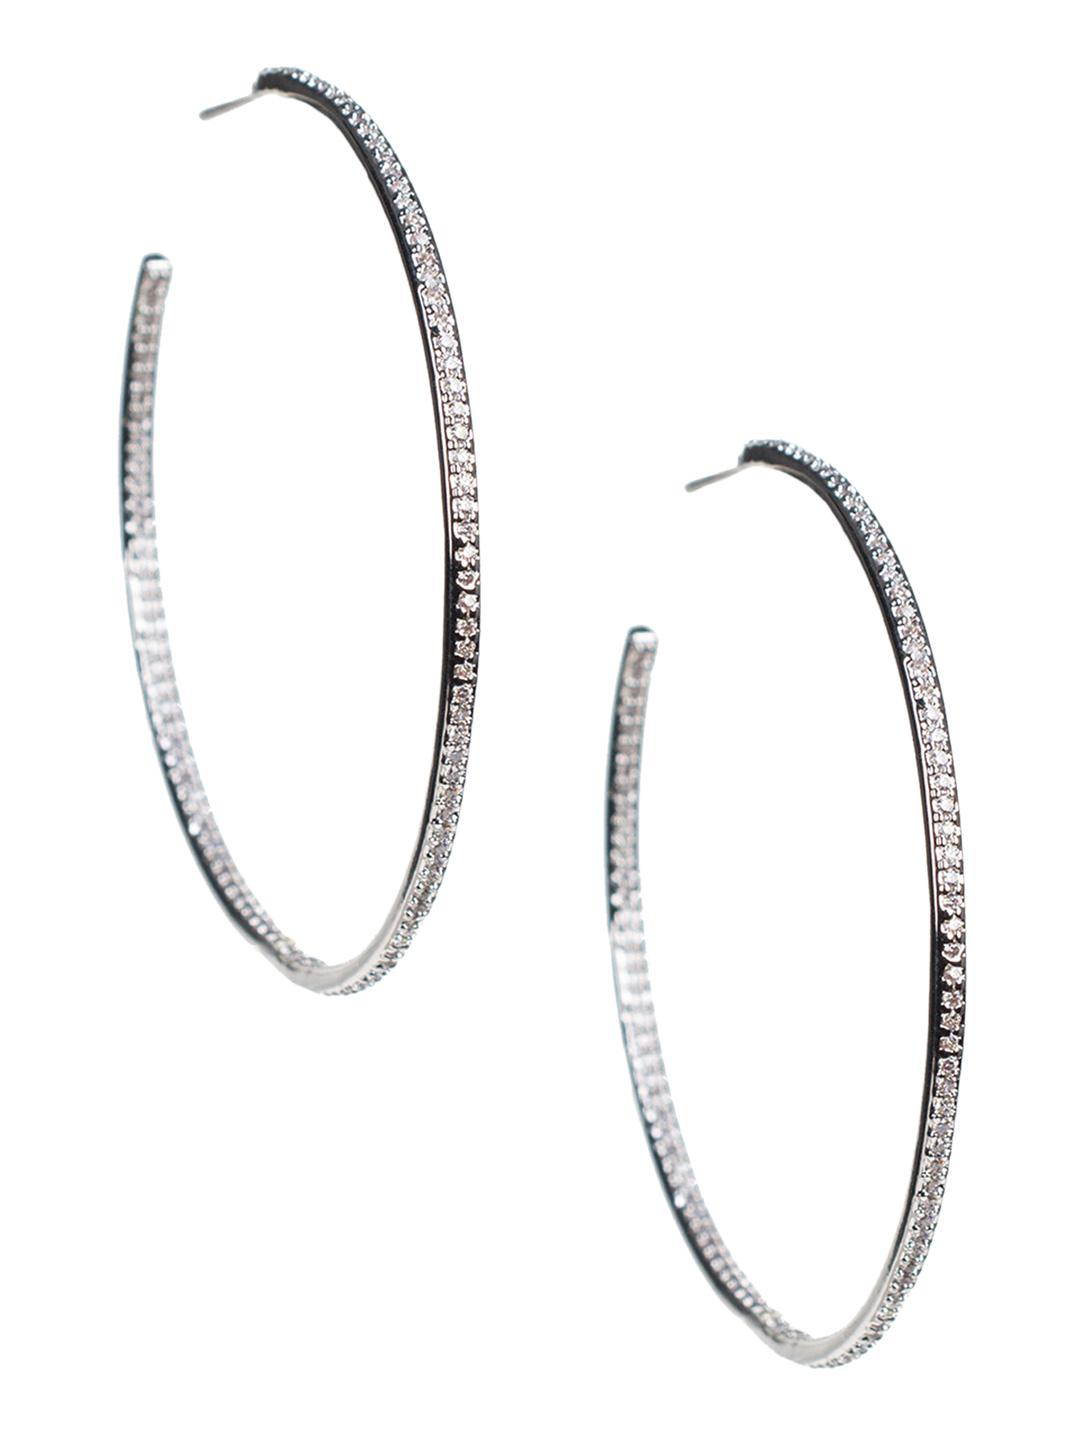 2c8c6254c5f4c CZ by Kenneth Jay Lane Cubic Zirconia Pave Inside Outside Hoop ...